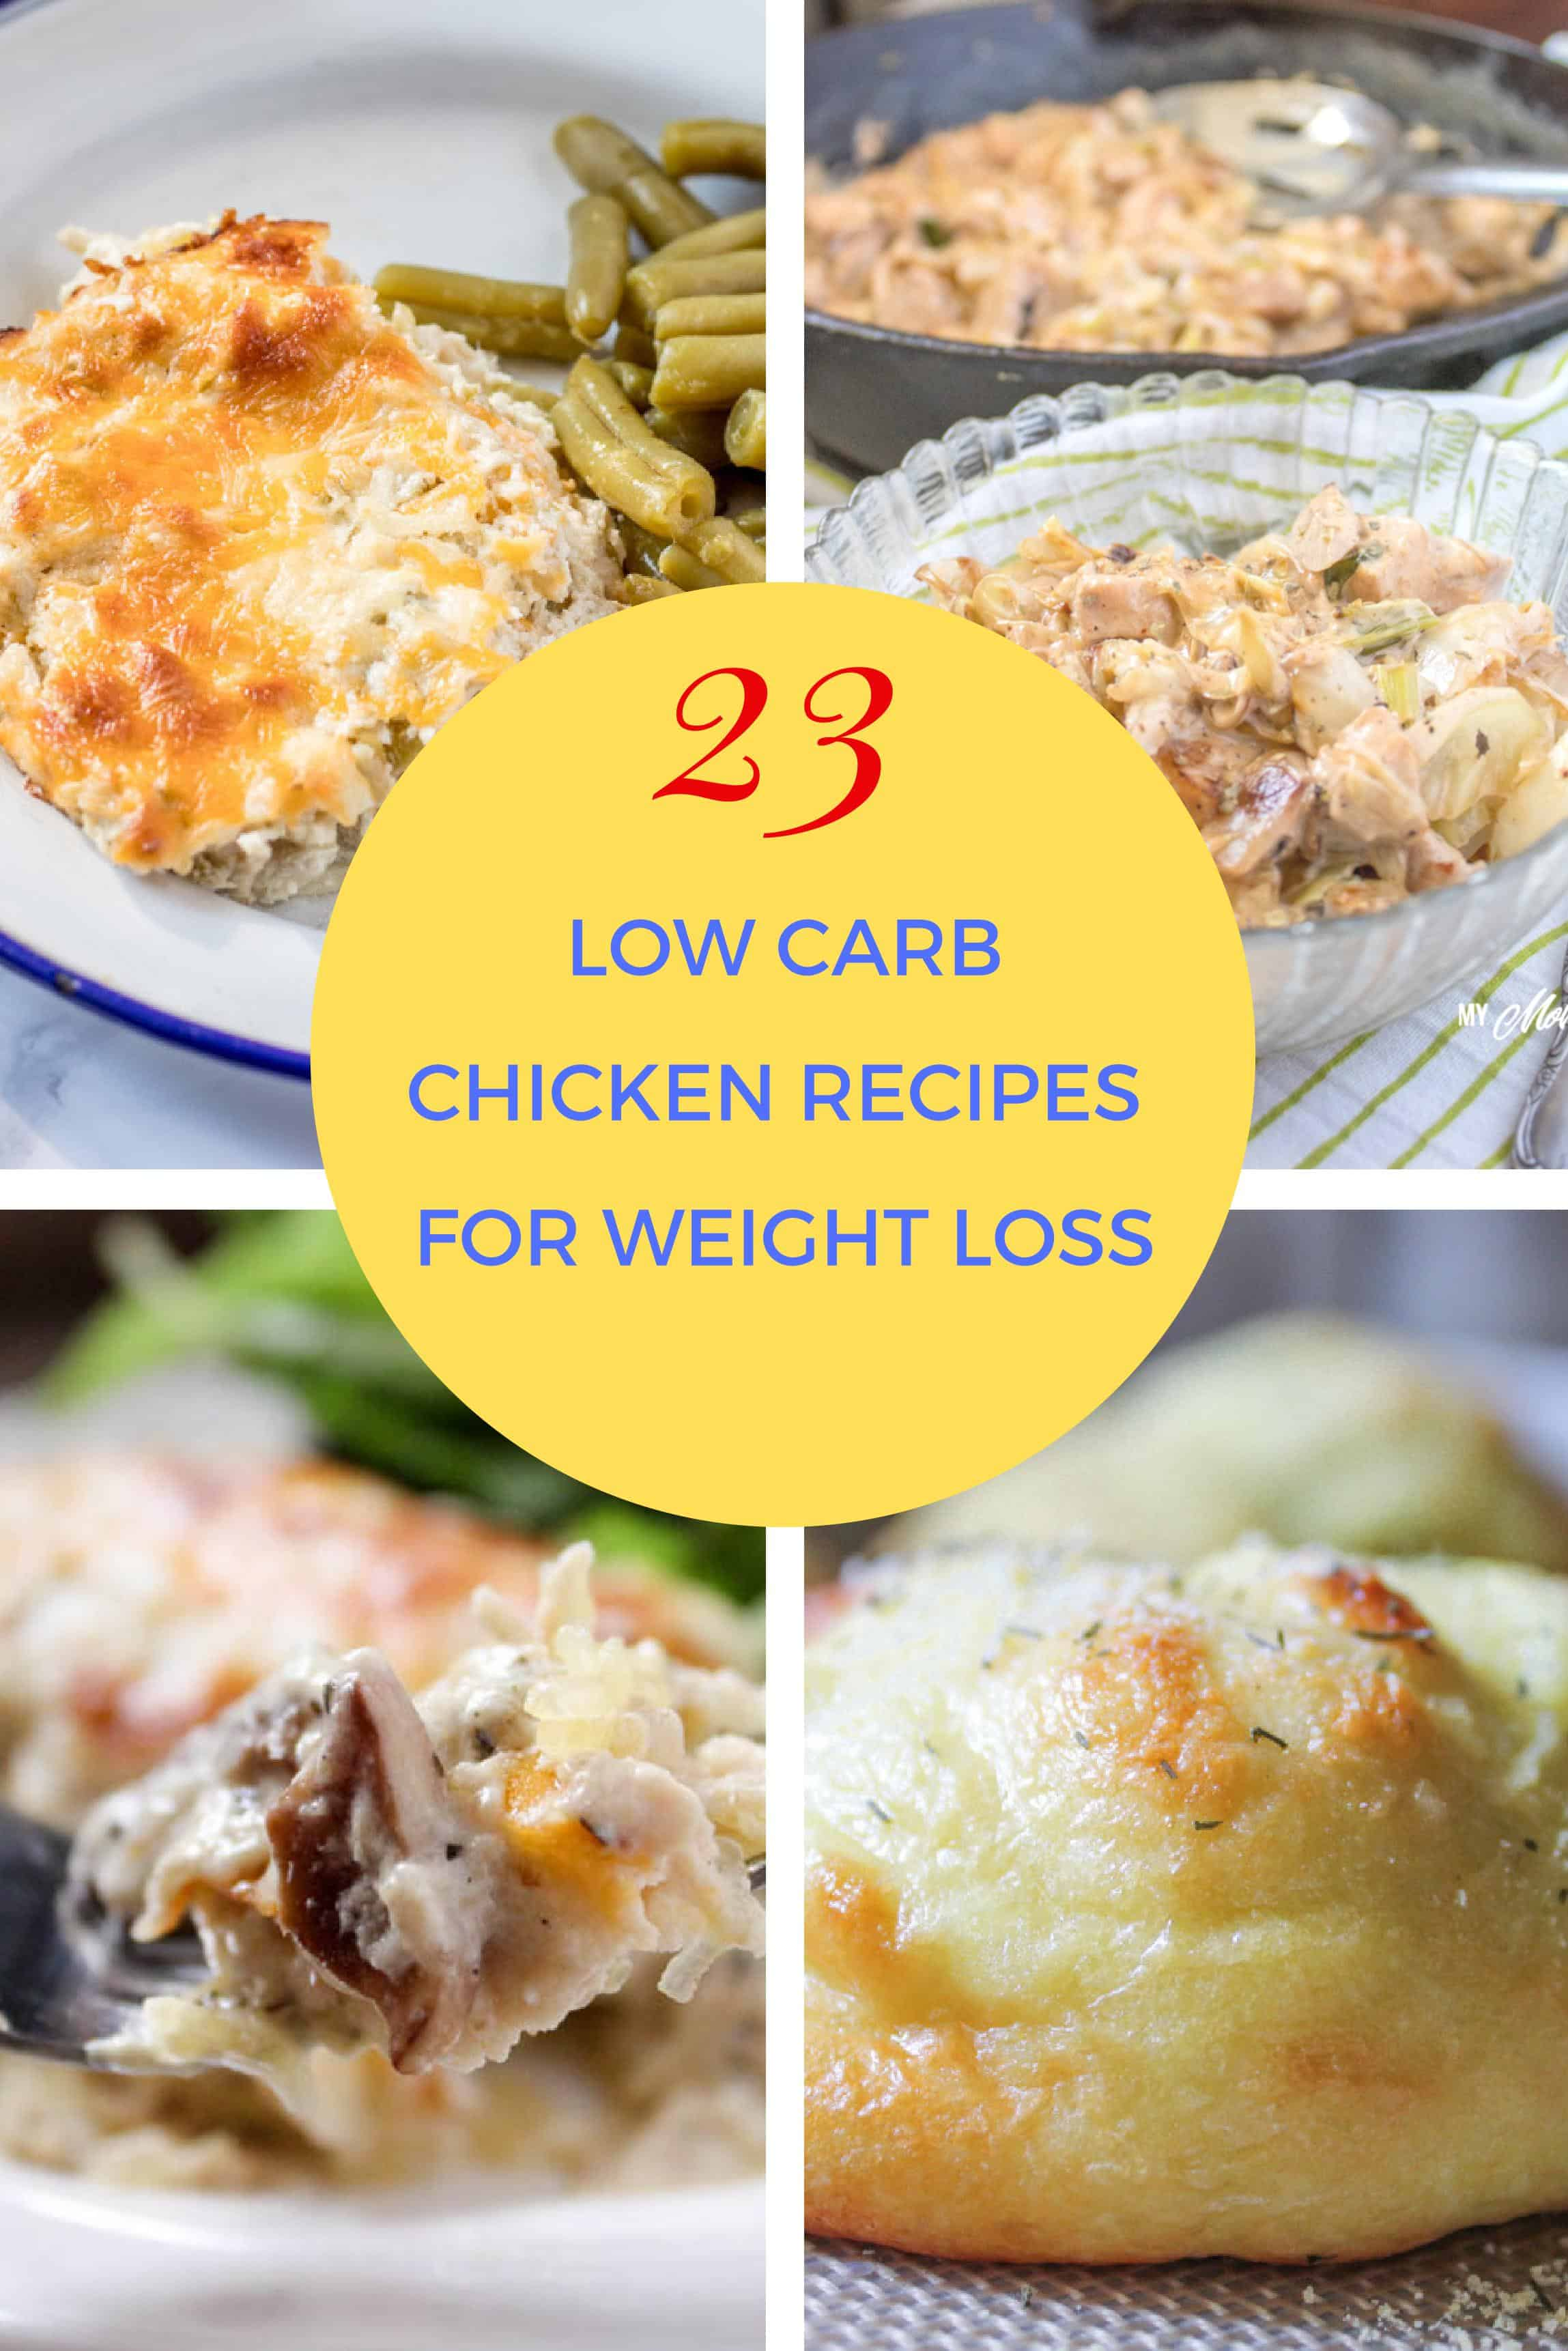 23 Delicious Low Carb Chicken Recipes for Lunch or Dinner. These are chicken recipes that your entire family will love.#lowcarb #trimhealthymama #thm #keto #chicken #easyrecipe #lowcarbchickenrecipes #glutenfree #